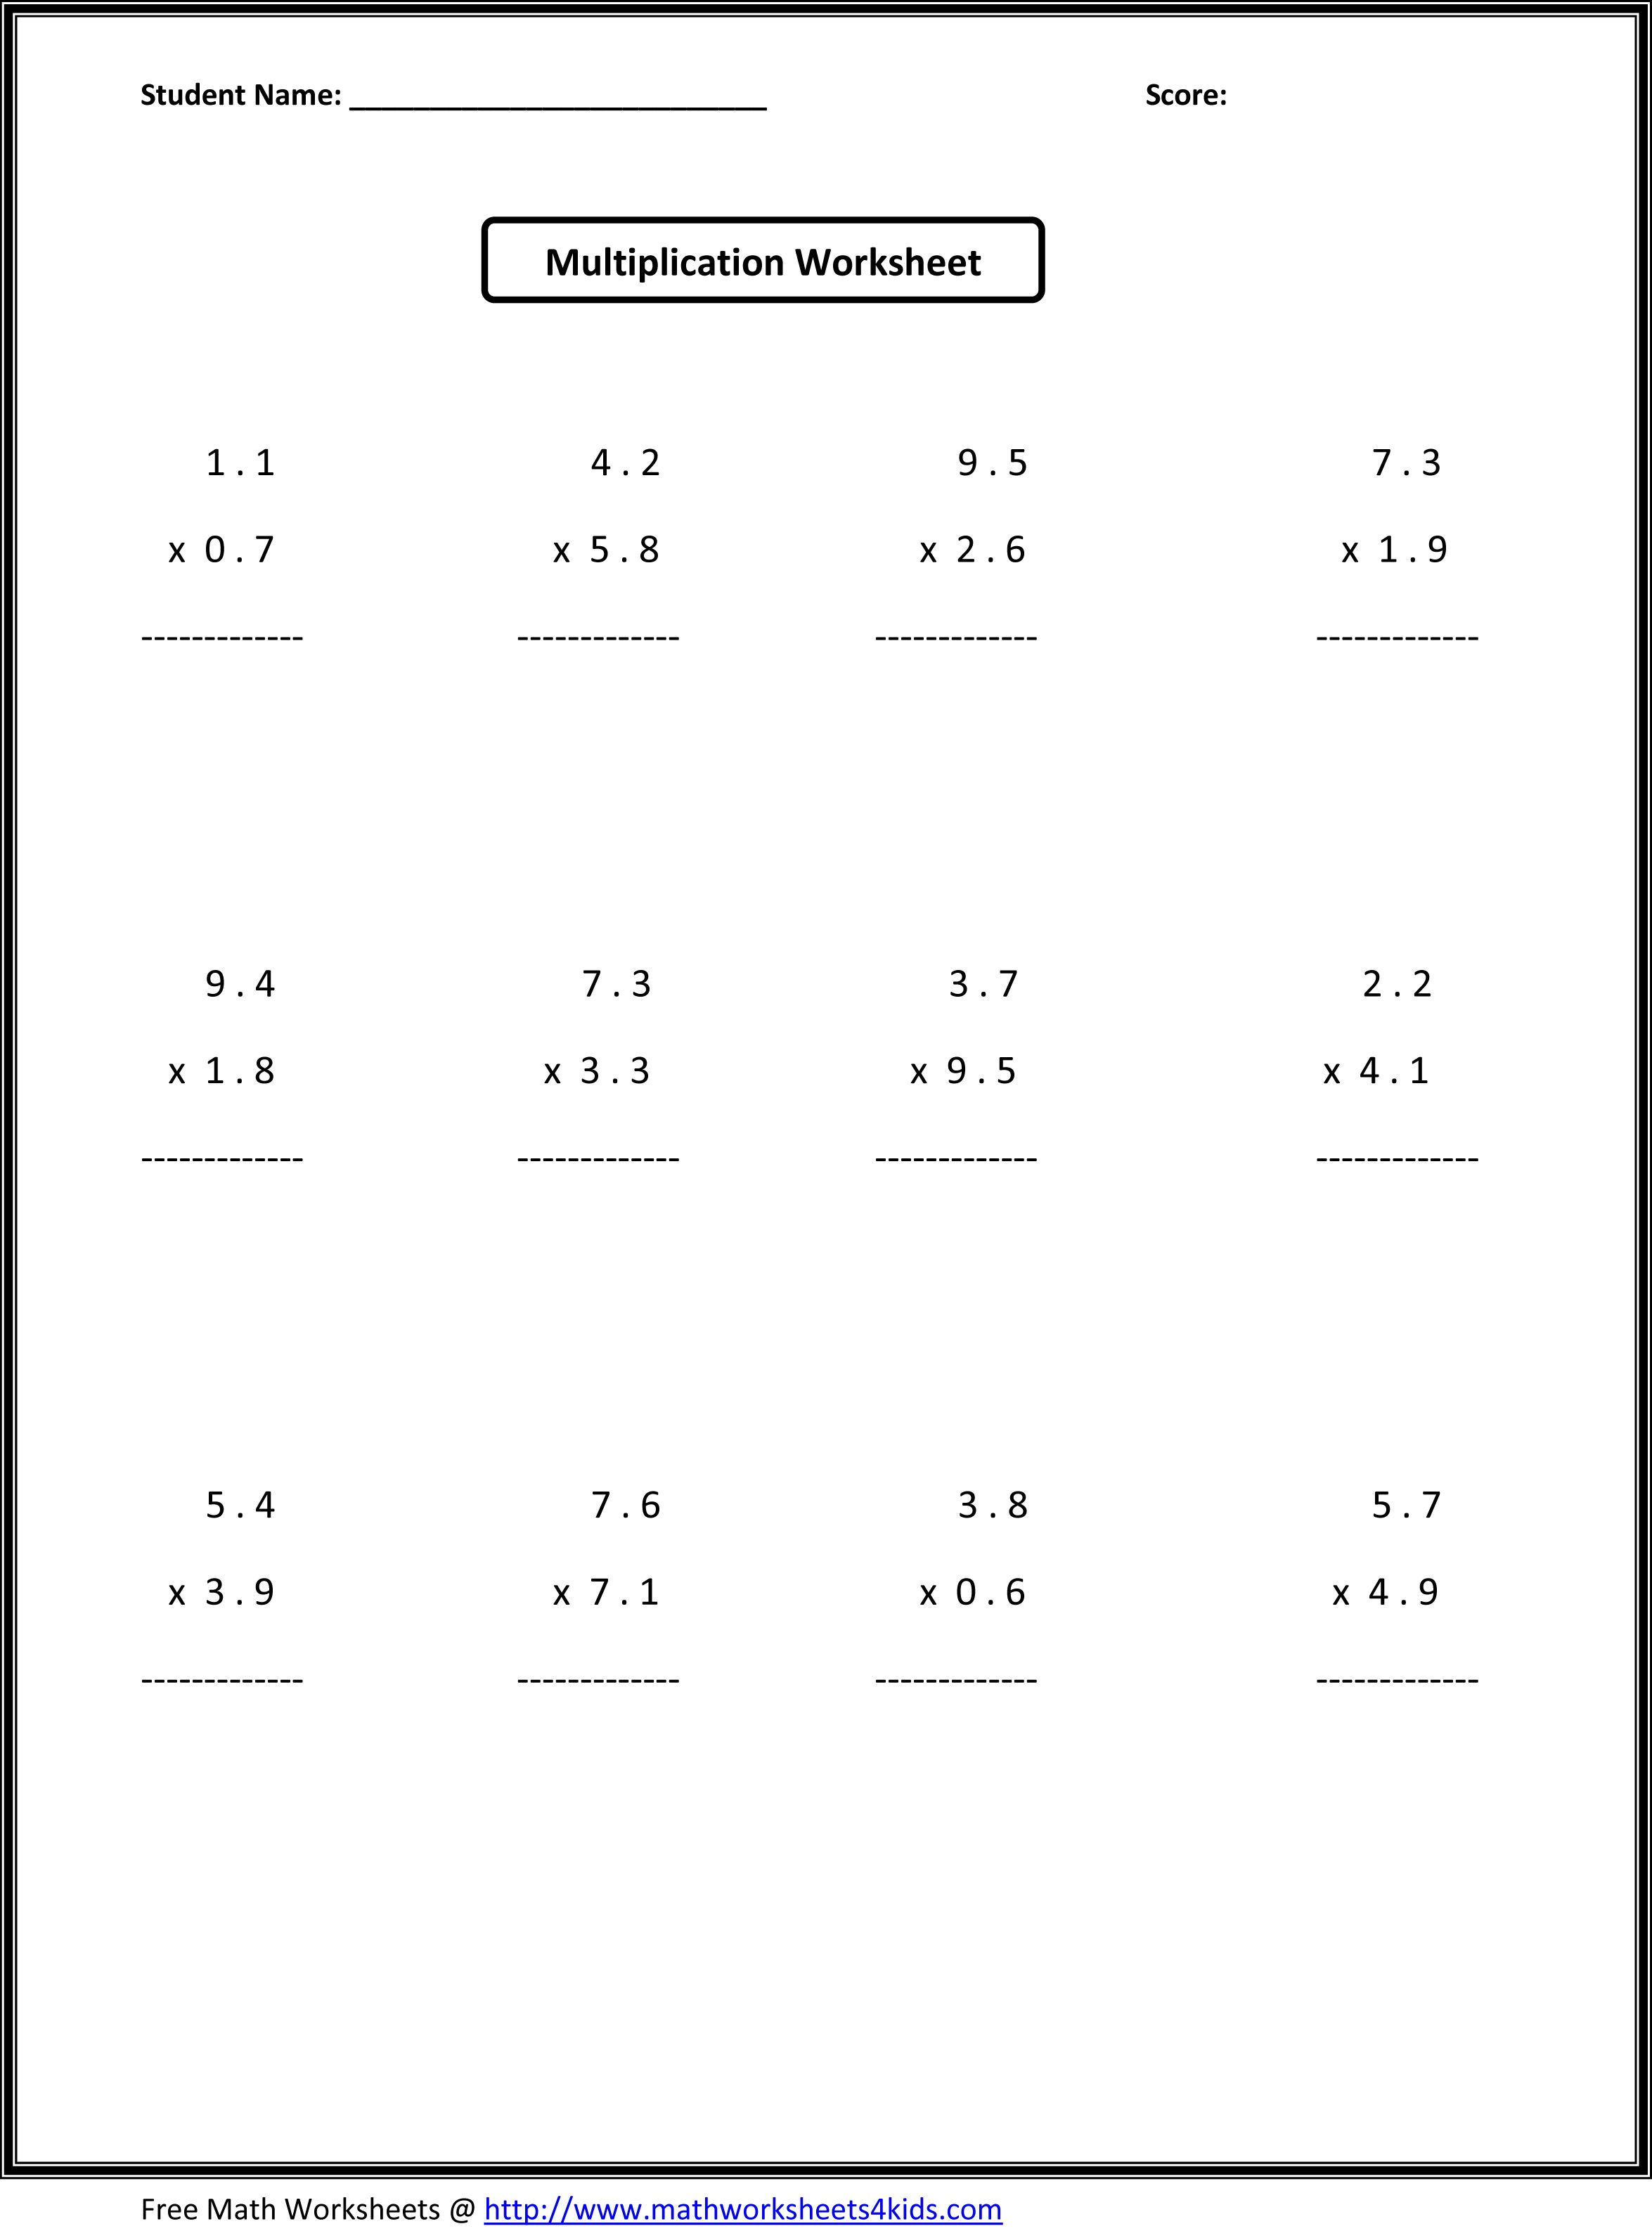 7th grade math worksheets – Math Worksheets for High School with Answers